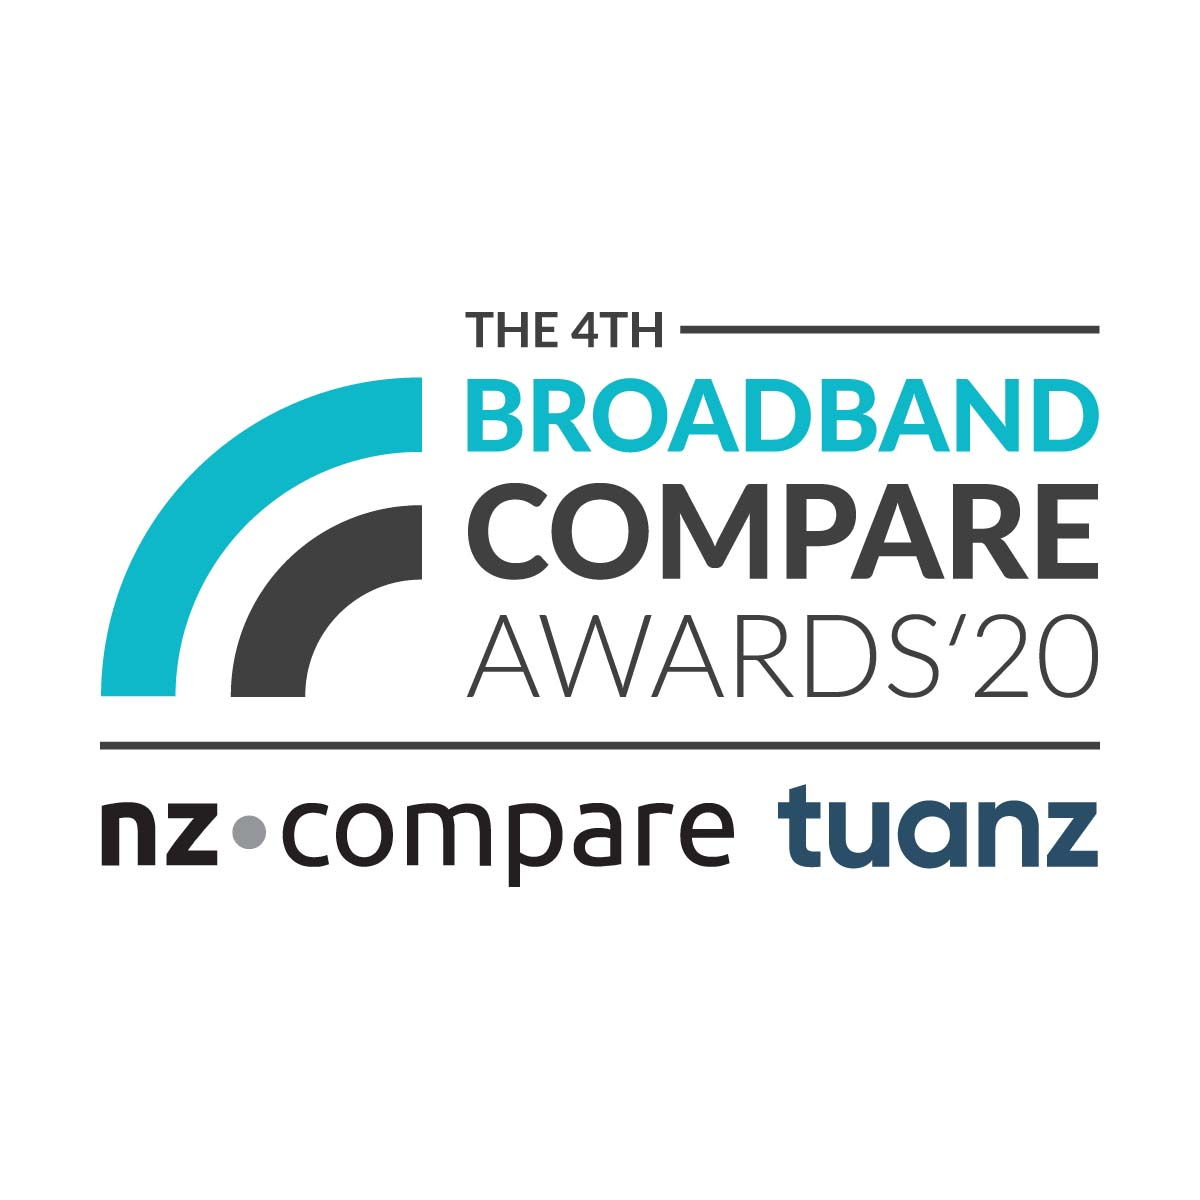 Broadband Compare Awards 2020